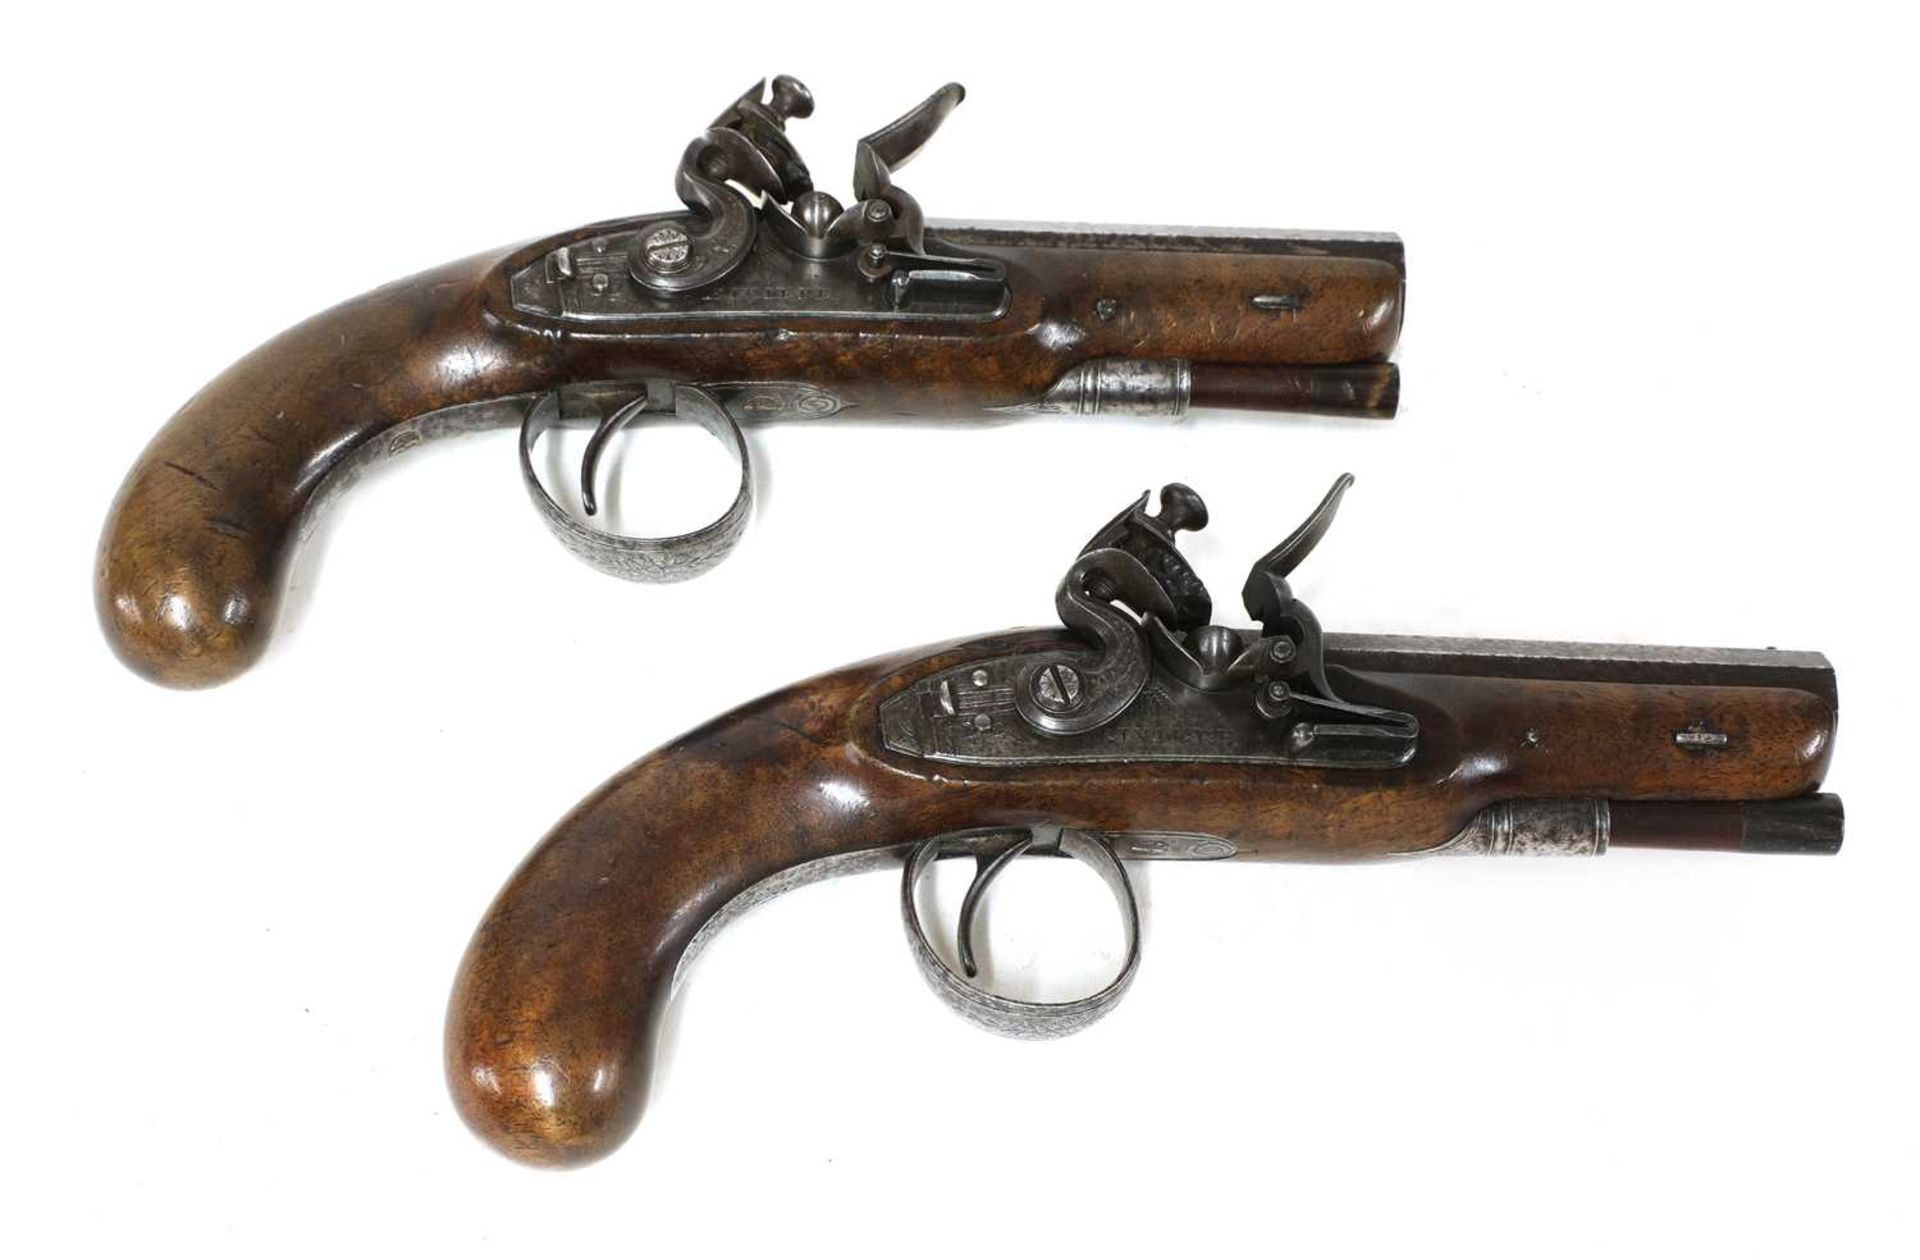 A PAIR OF 'RIVIERE LONDON' POCKET PISTOLS,